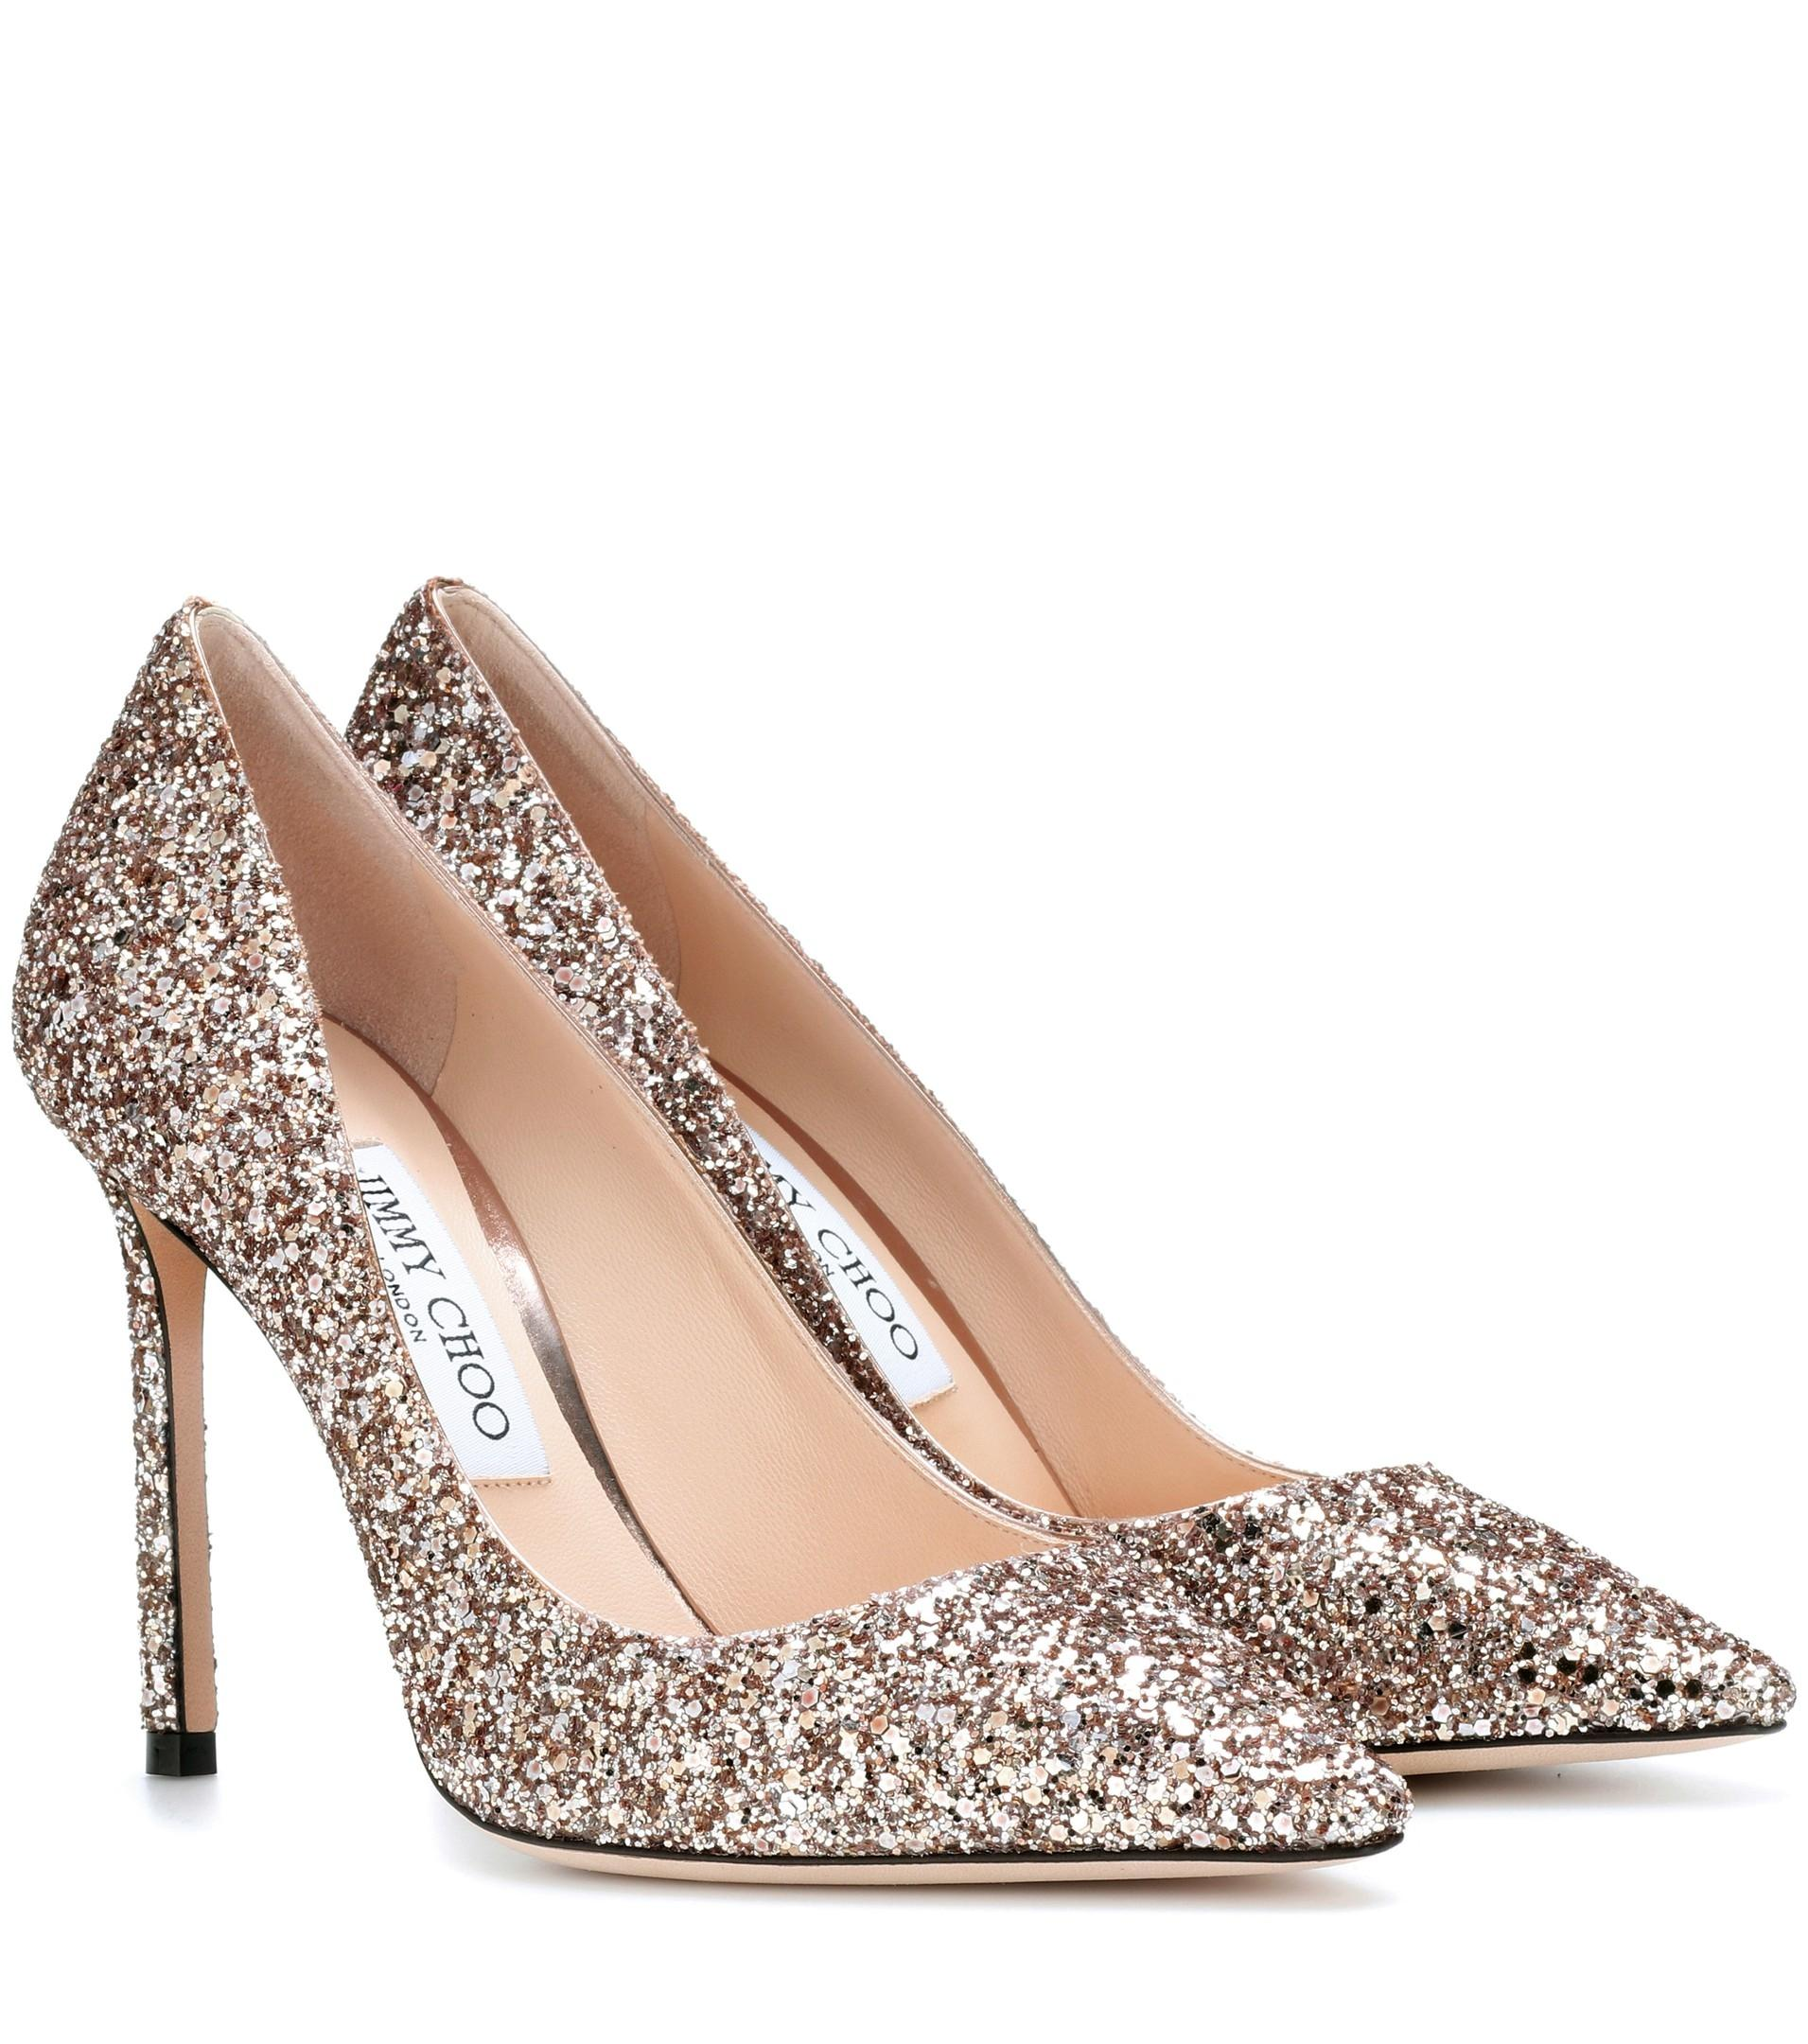 Jimmy Choo Ballet Pink Gold New Romy 100 Nude Patent 6.5 Pumps Size EU 37 (Approx. US 7) Regular (M, B)